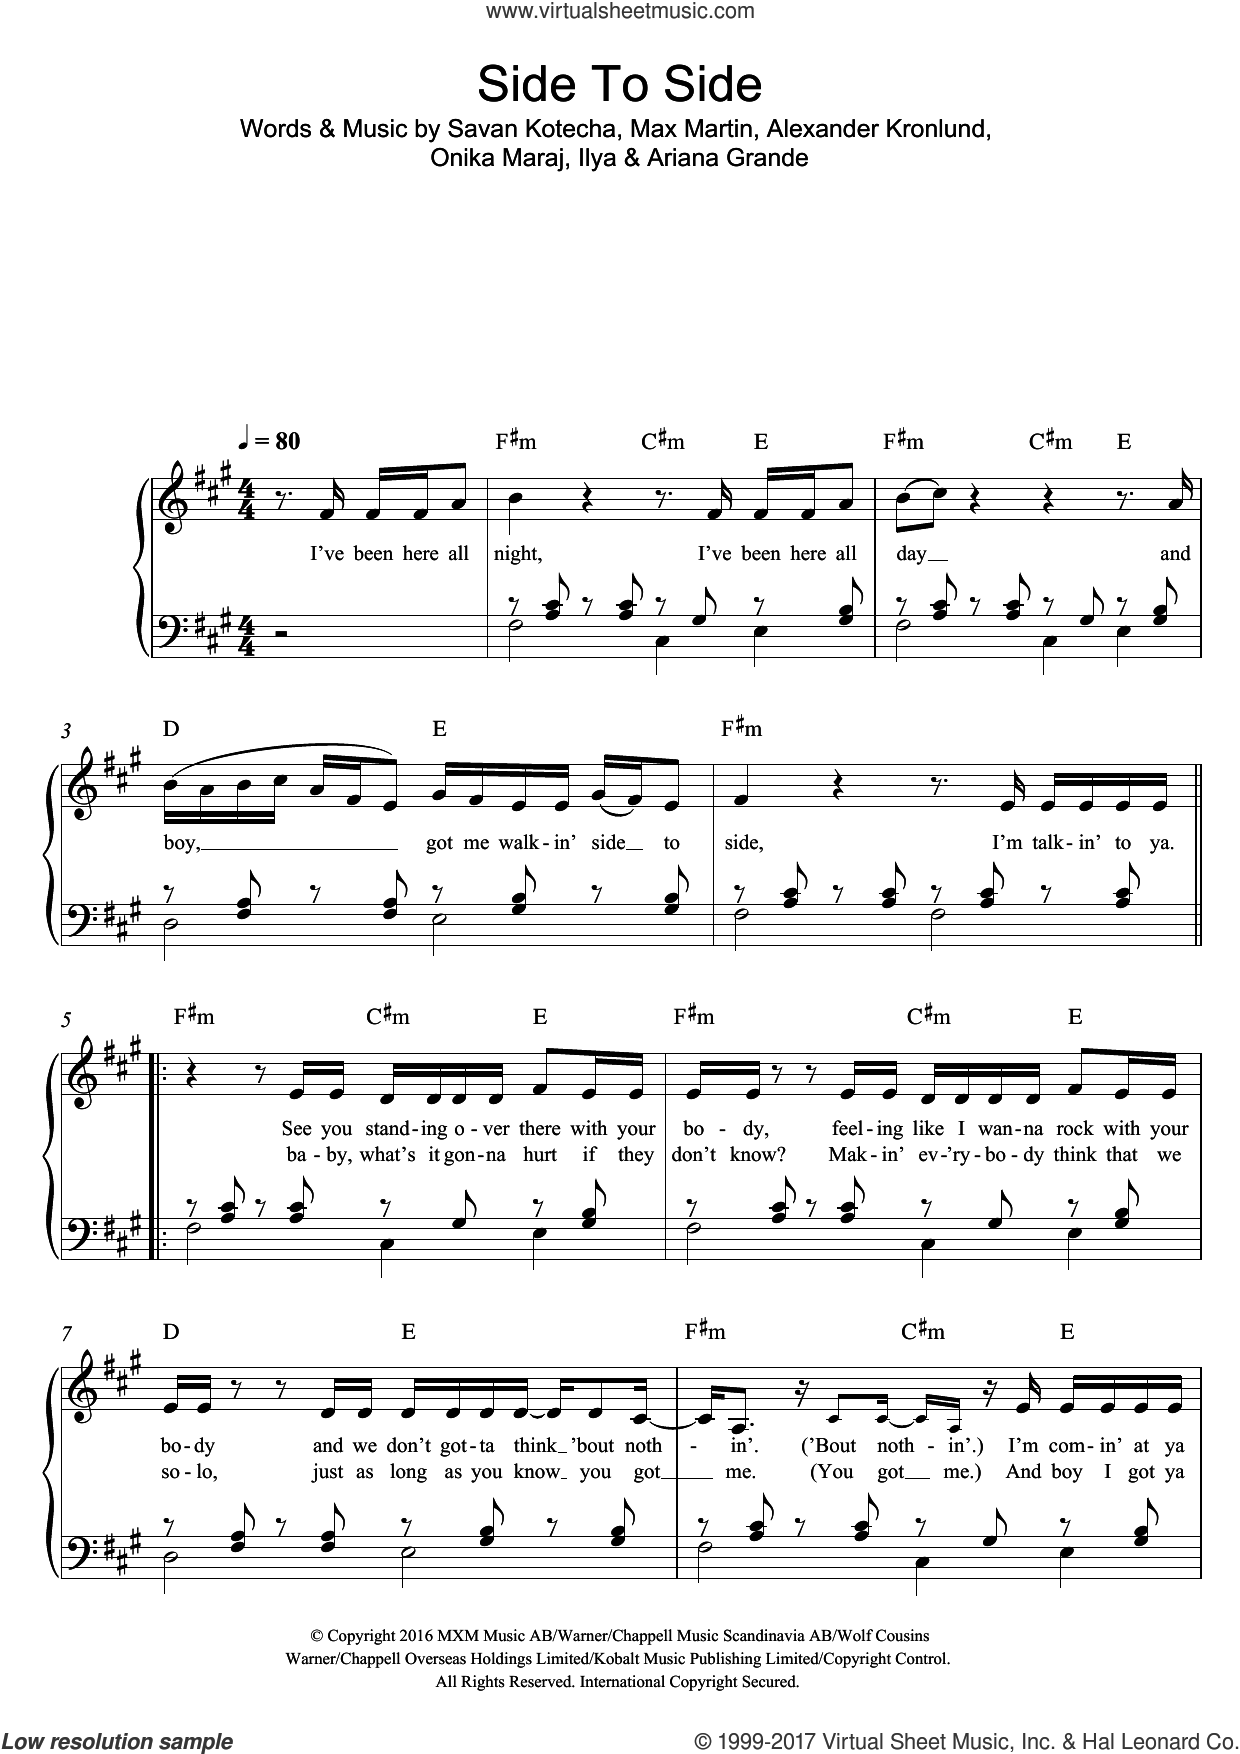 Side To Side (featuring Nicki Minaj) sheet music for piano solo by Ariana Grande, Ariana Grande feat. Nicki Minaj, Nicki Minaj, Alexander Kronlund, Ilya, Max Martin, Onika Maraj and Savan Kotecha, easy skill level